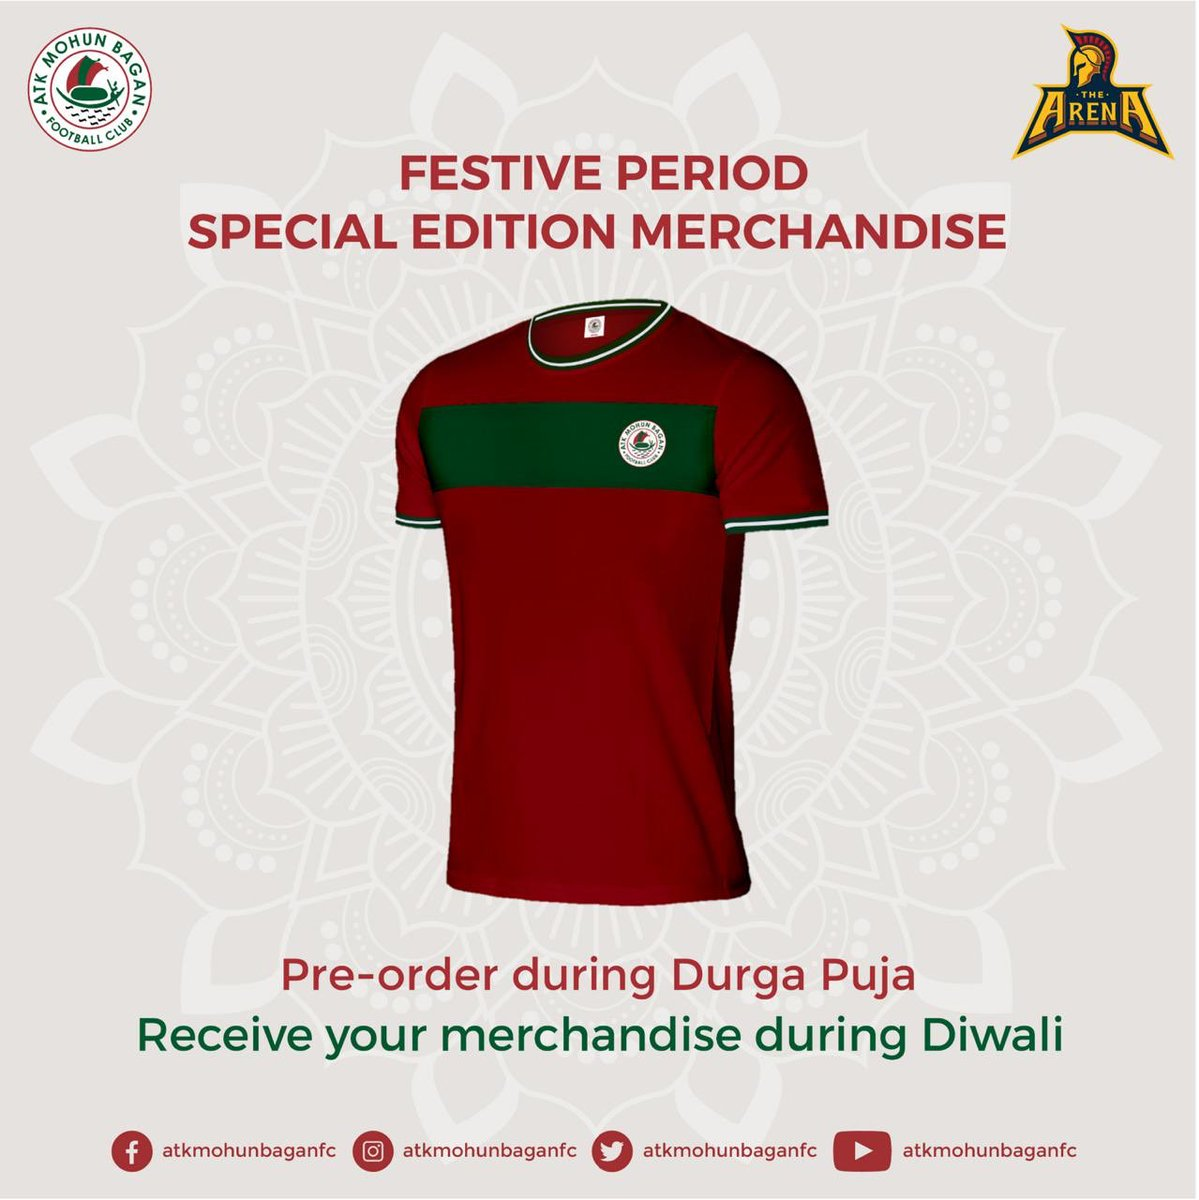 Dear #Mariners, on this auspicious day, we are adding more style with Green & Maroon flavour to the ATK Mohun Bagan festive season collection exclusively on Shop The Arena ! 💚❤️ Head to https://t.co/GxUdqZ4wQv to pre-order yours now! 🤩😍  #ATKMohunBagan #JoyMohunBagan https://t.co/8xQsGRNb8C